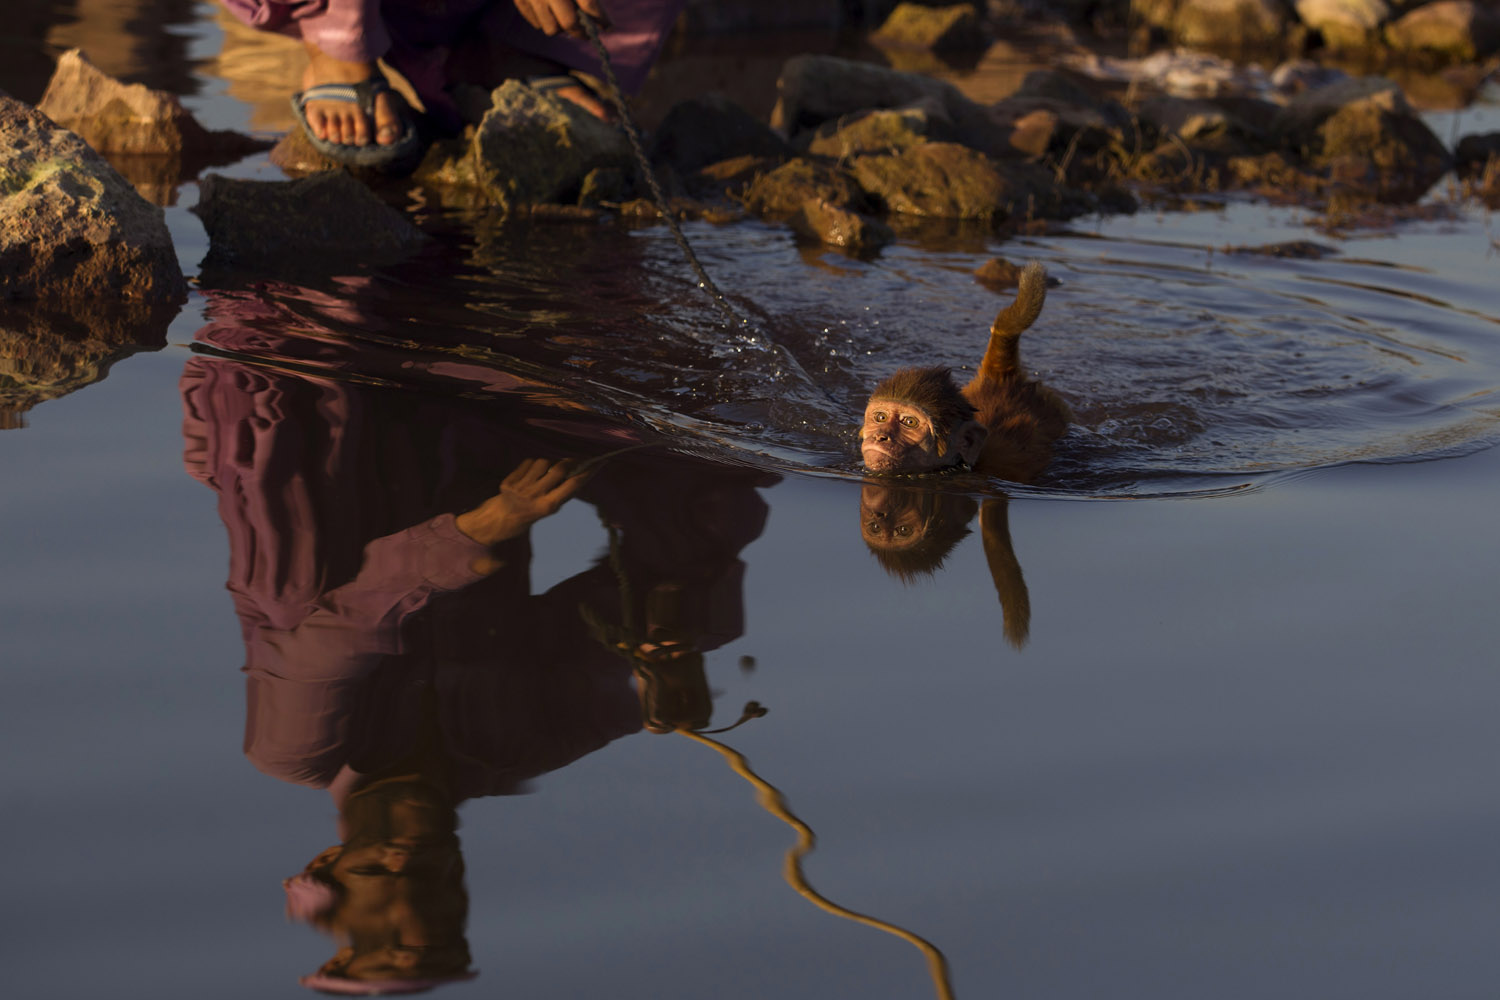 May 31, 2013. Pakistani monkey handler Naseer helps his monkey to plunge in water to beat the heat in Islamabad, where temperatures reached 106 degrees Fahrenheit.